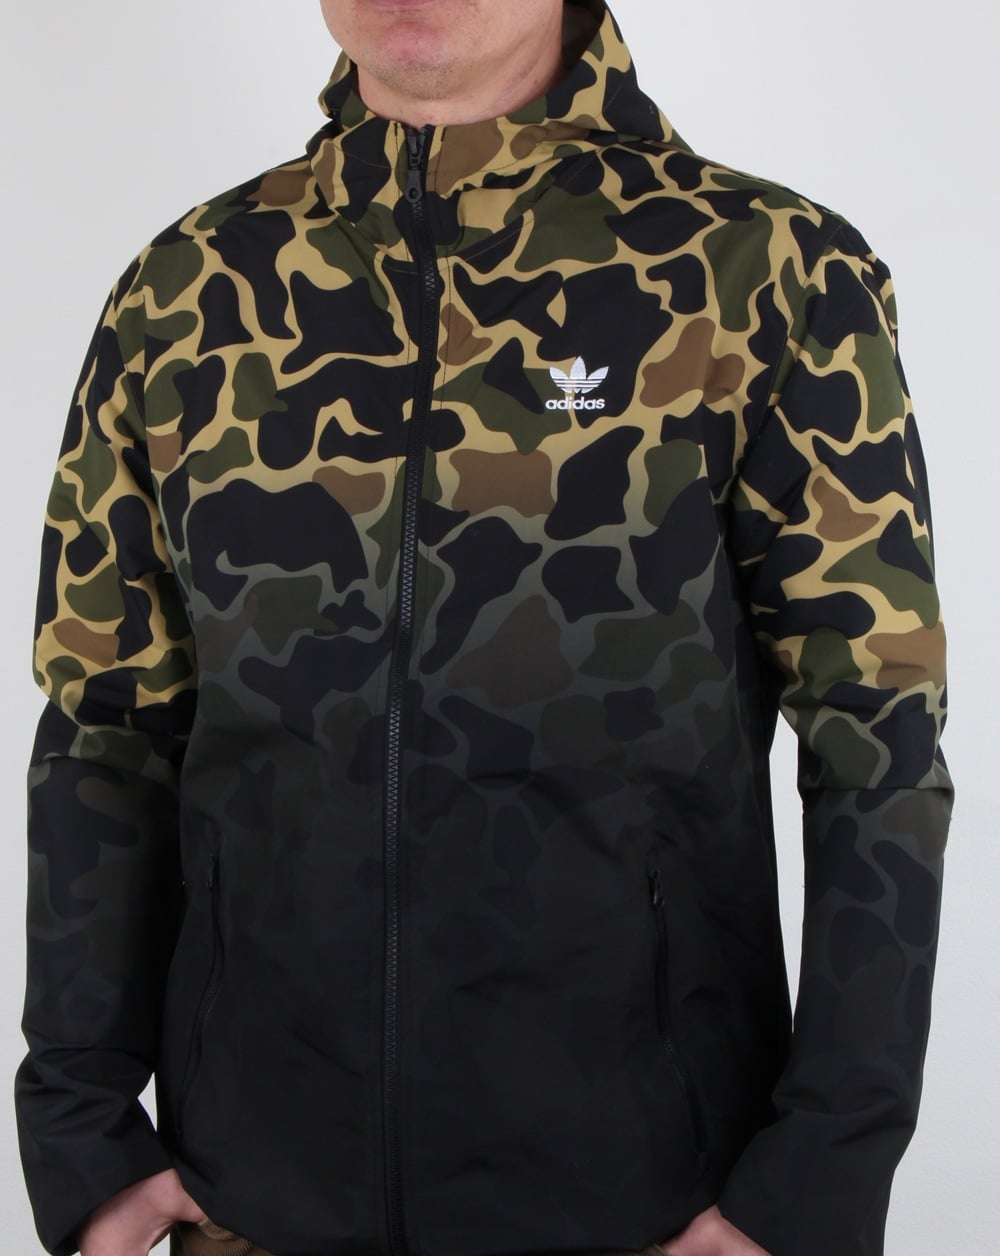 Adidas Originals Camo Windbreaker Mens Jacket Rain Wind